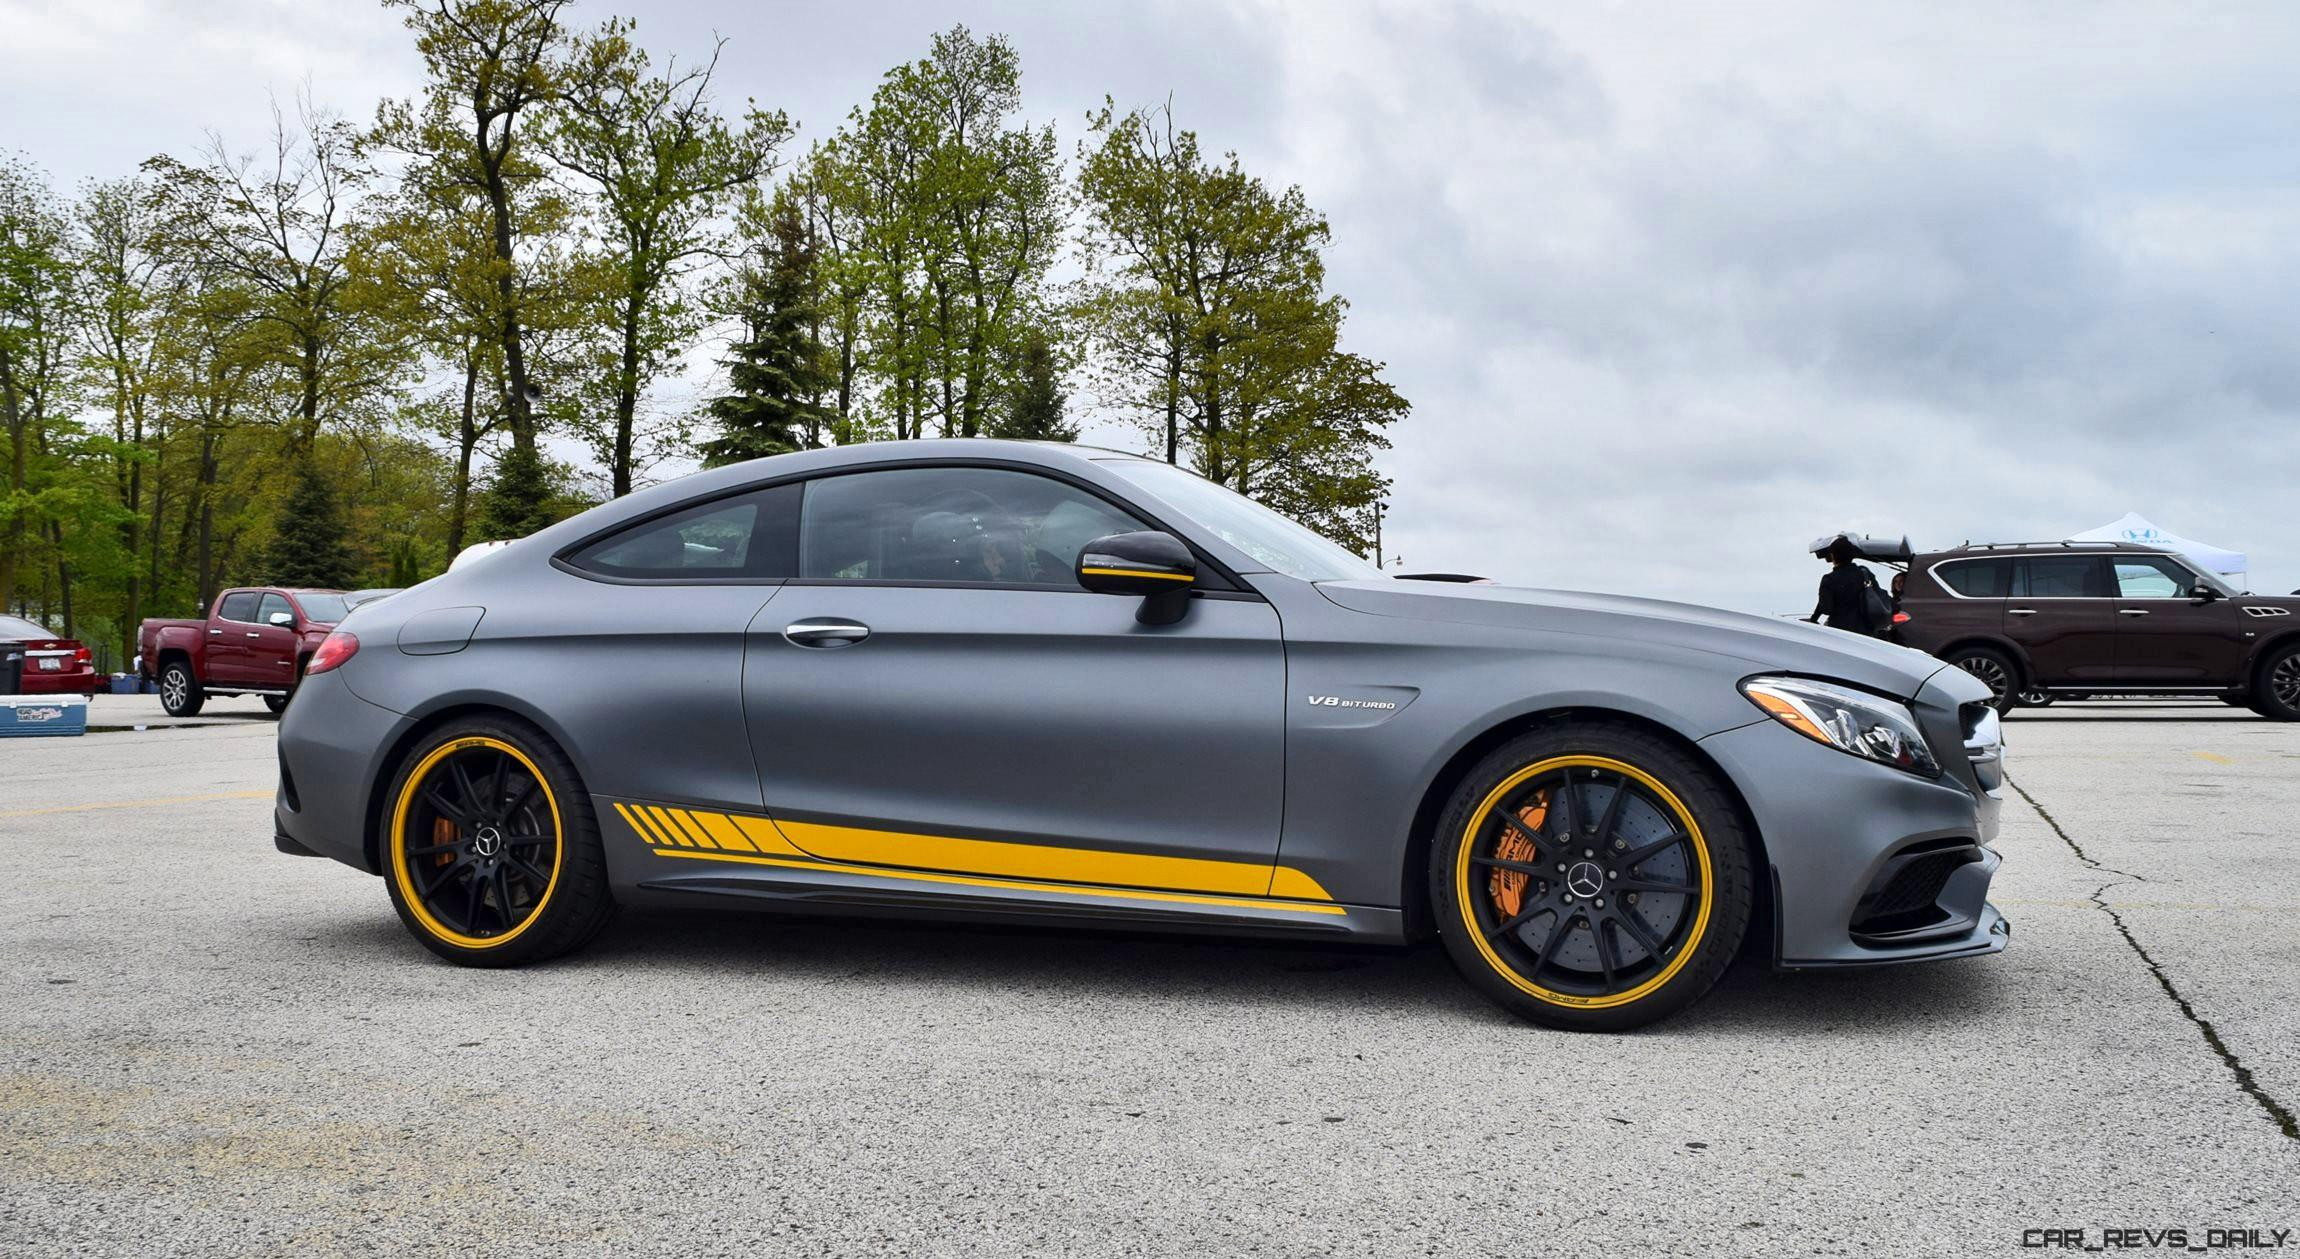 2017 mercedes amg c63 s coupe edition one usa photoset. Black Bedroom Furniture Sets. Home Design Ideas